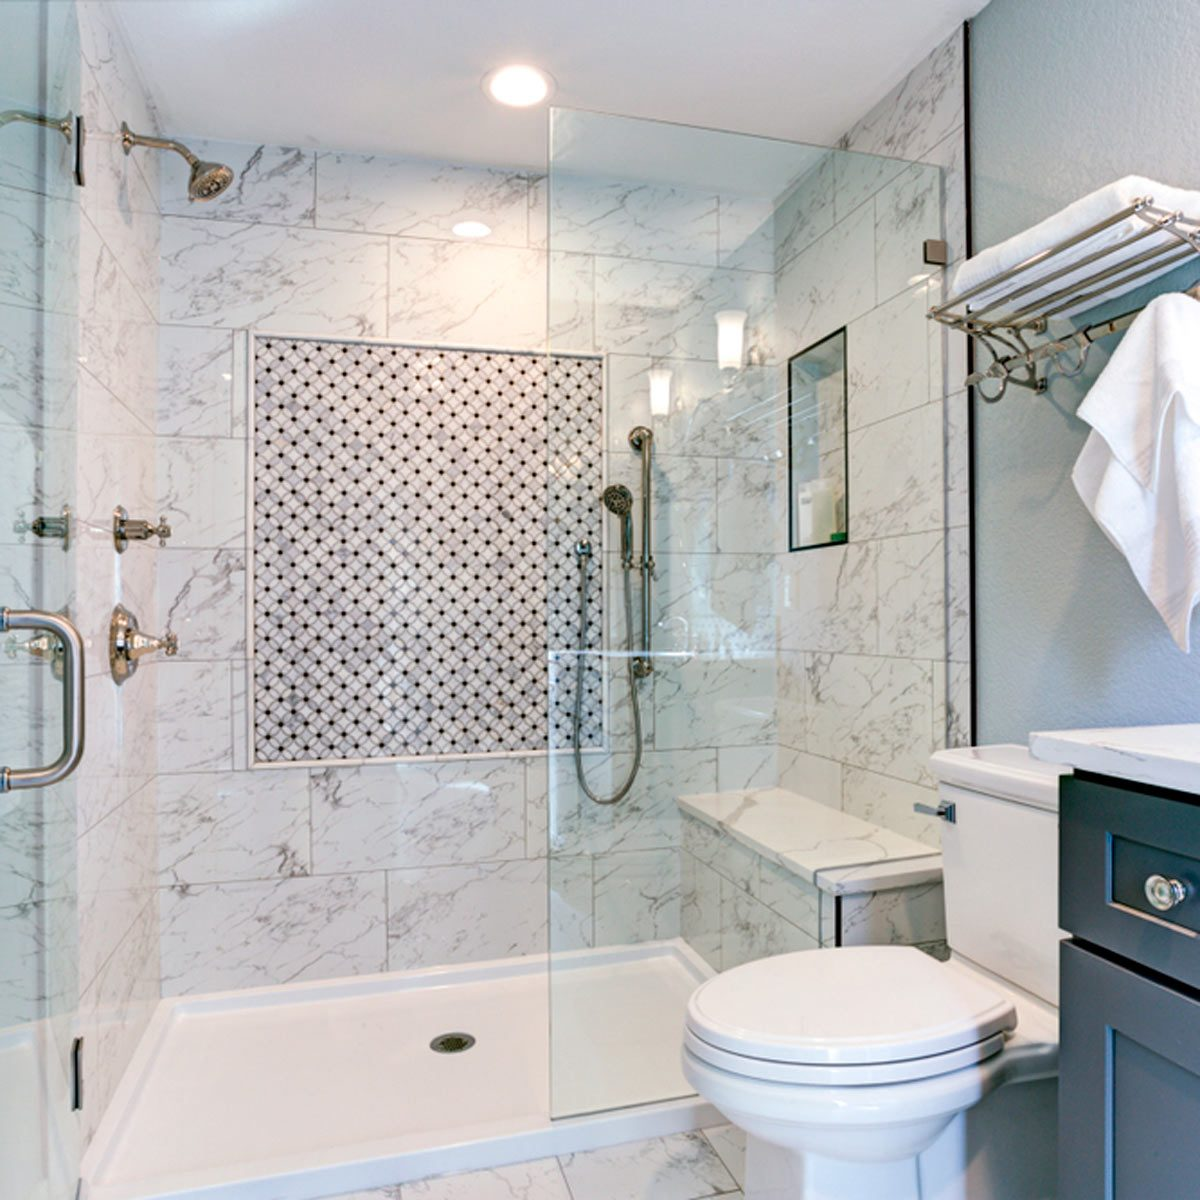 15 Remodeling Ideas That Will Pay Off In 2019 Family Handyman